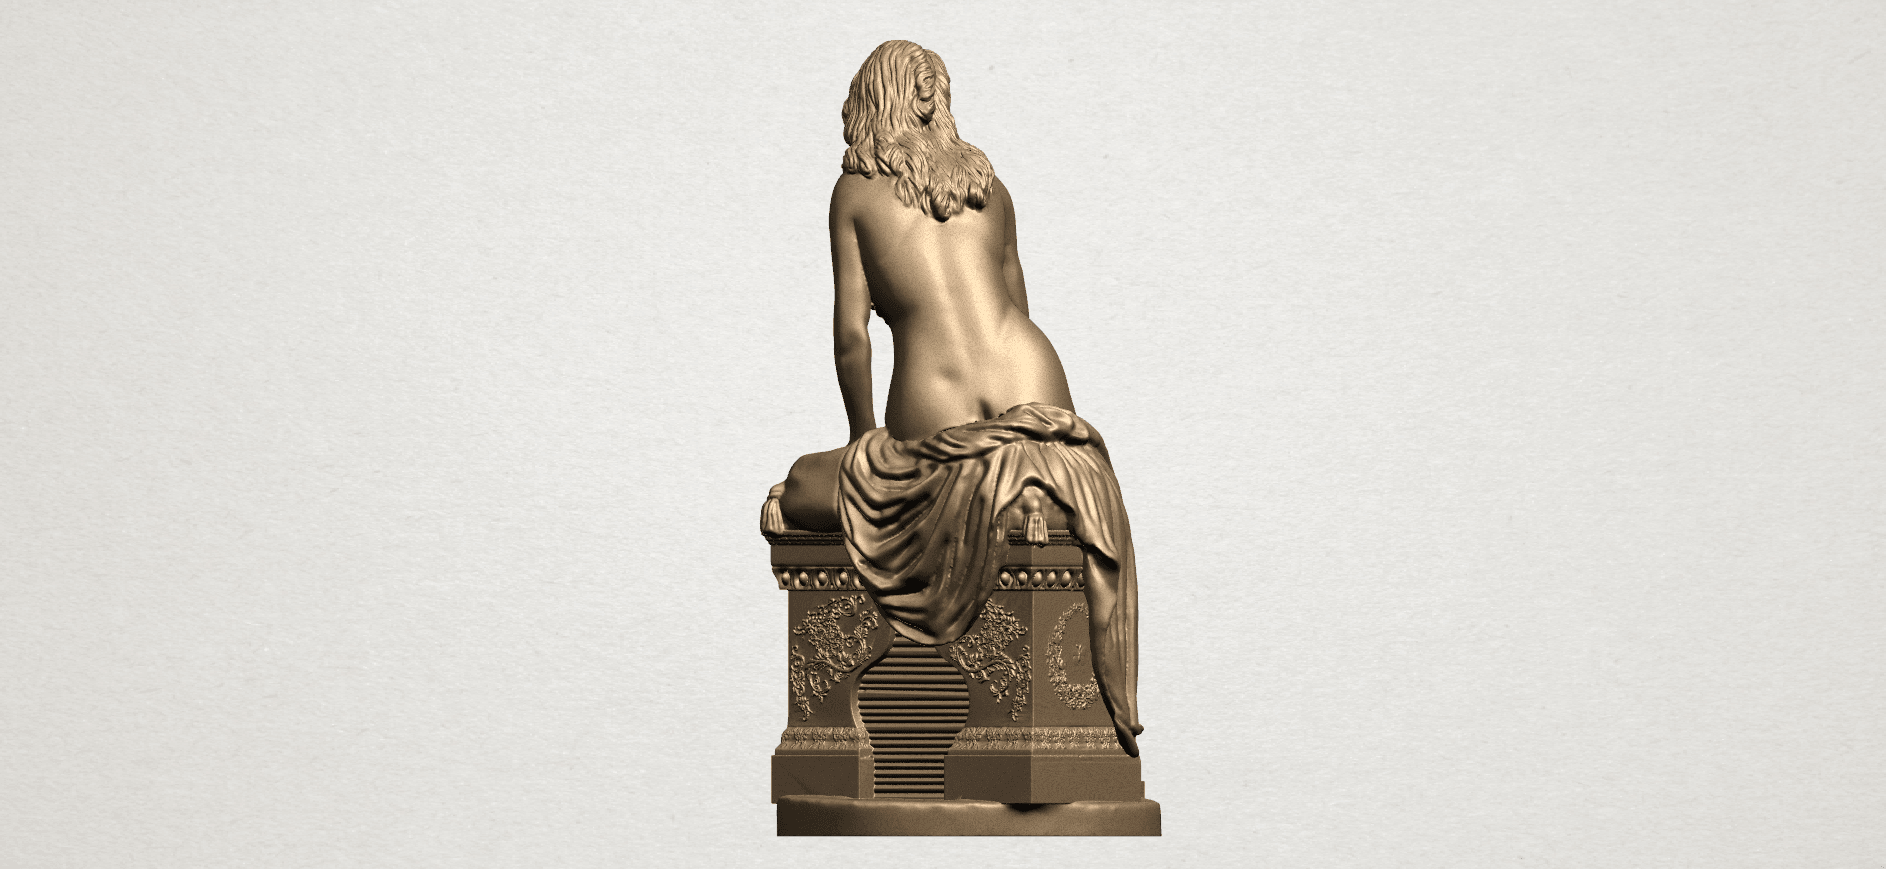 Naked Girl (i) A05.png Download free STL file Naked Girl 01 • 3D printing model, GeorgesNikkei